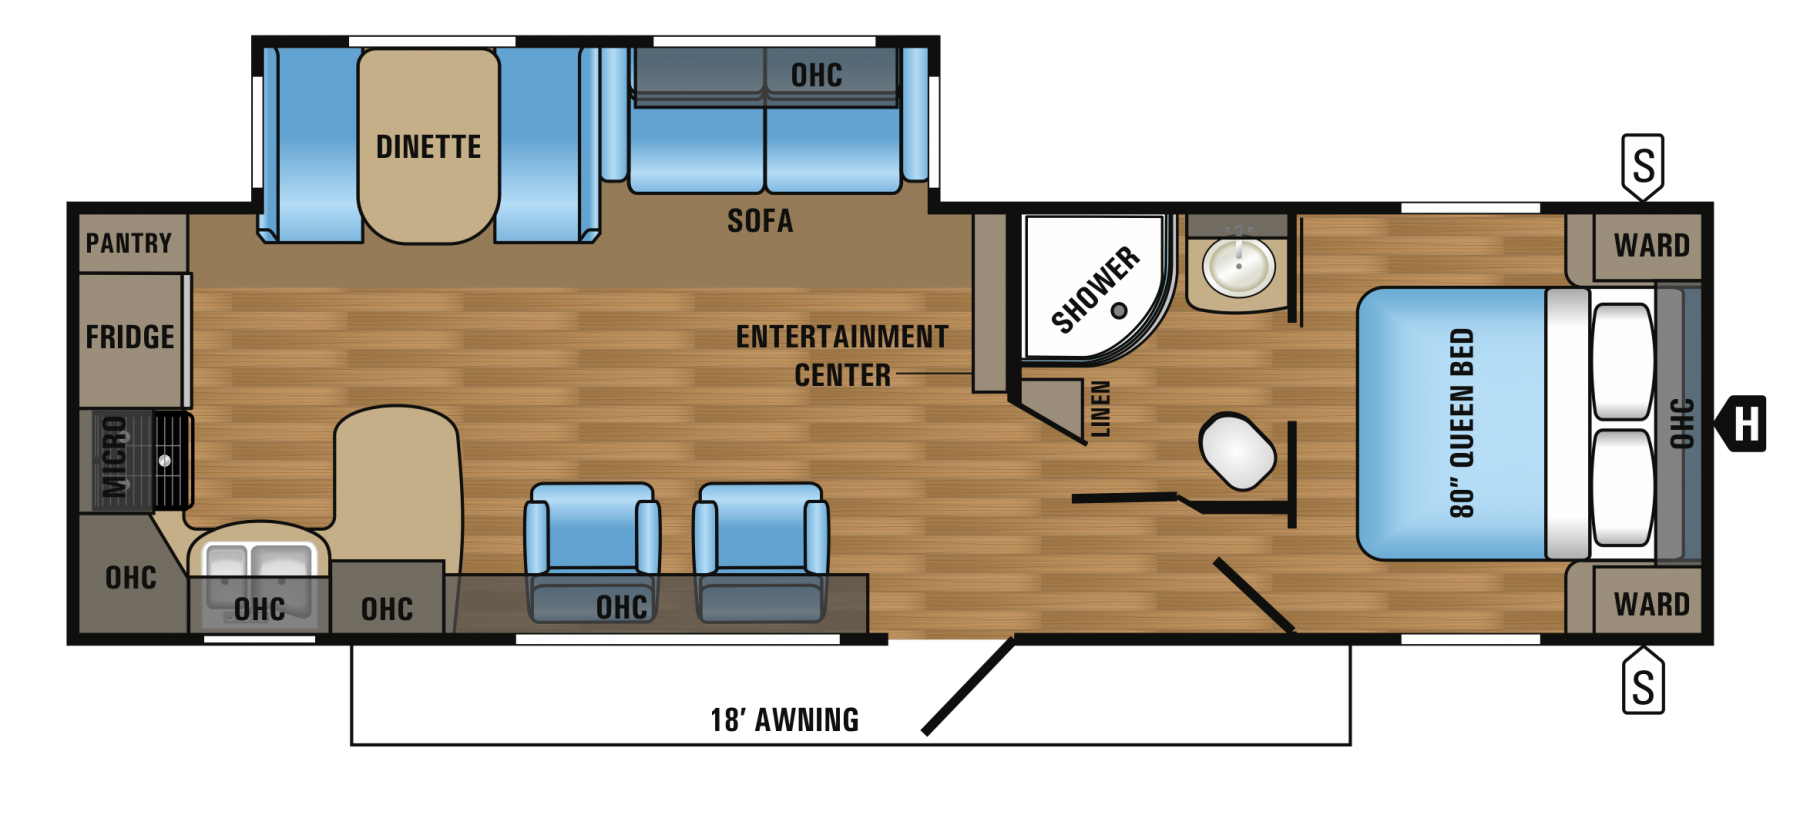 Appealing wiring diagram for 1996 jayco eagle travel trailer photos jayco rv wiring diagram jay ca international 275 wiring diagram asfbconference2016 Gallery